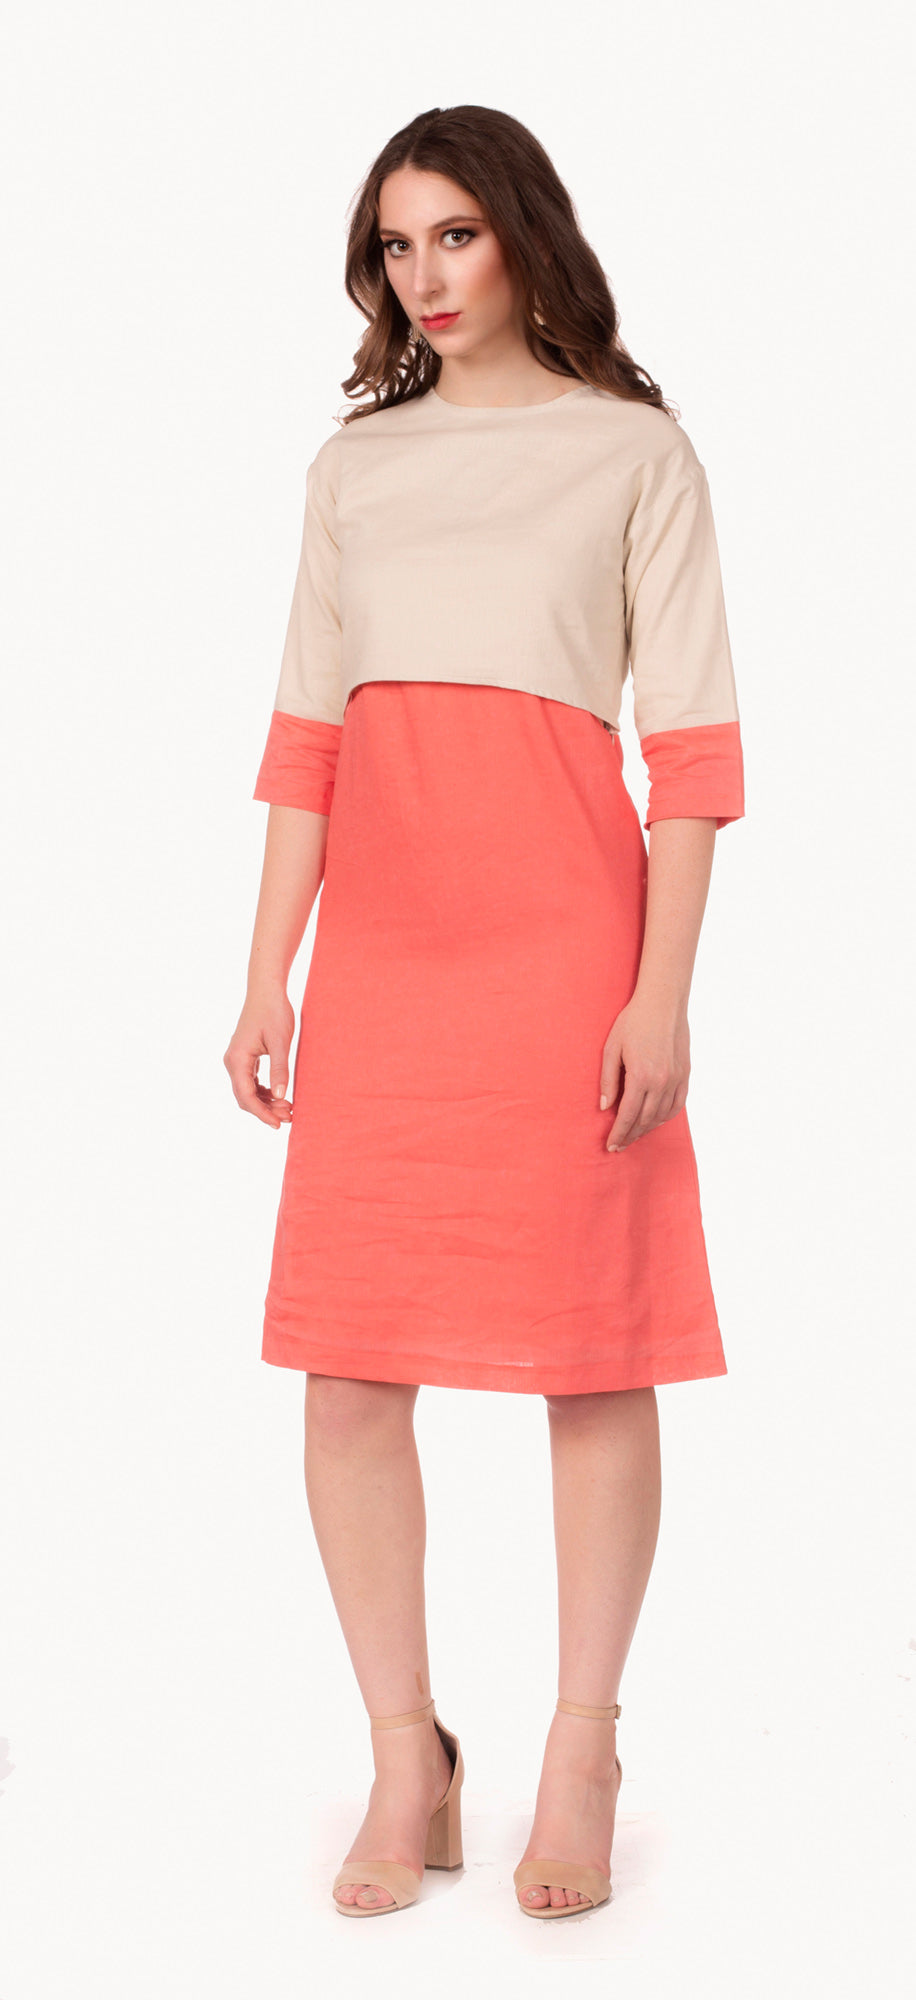 Colorblock Linen Dress - Nursing Dress with Hidden Zippers - Flamingo/Beige